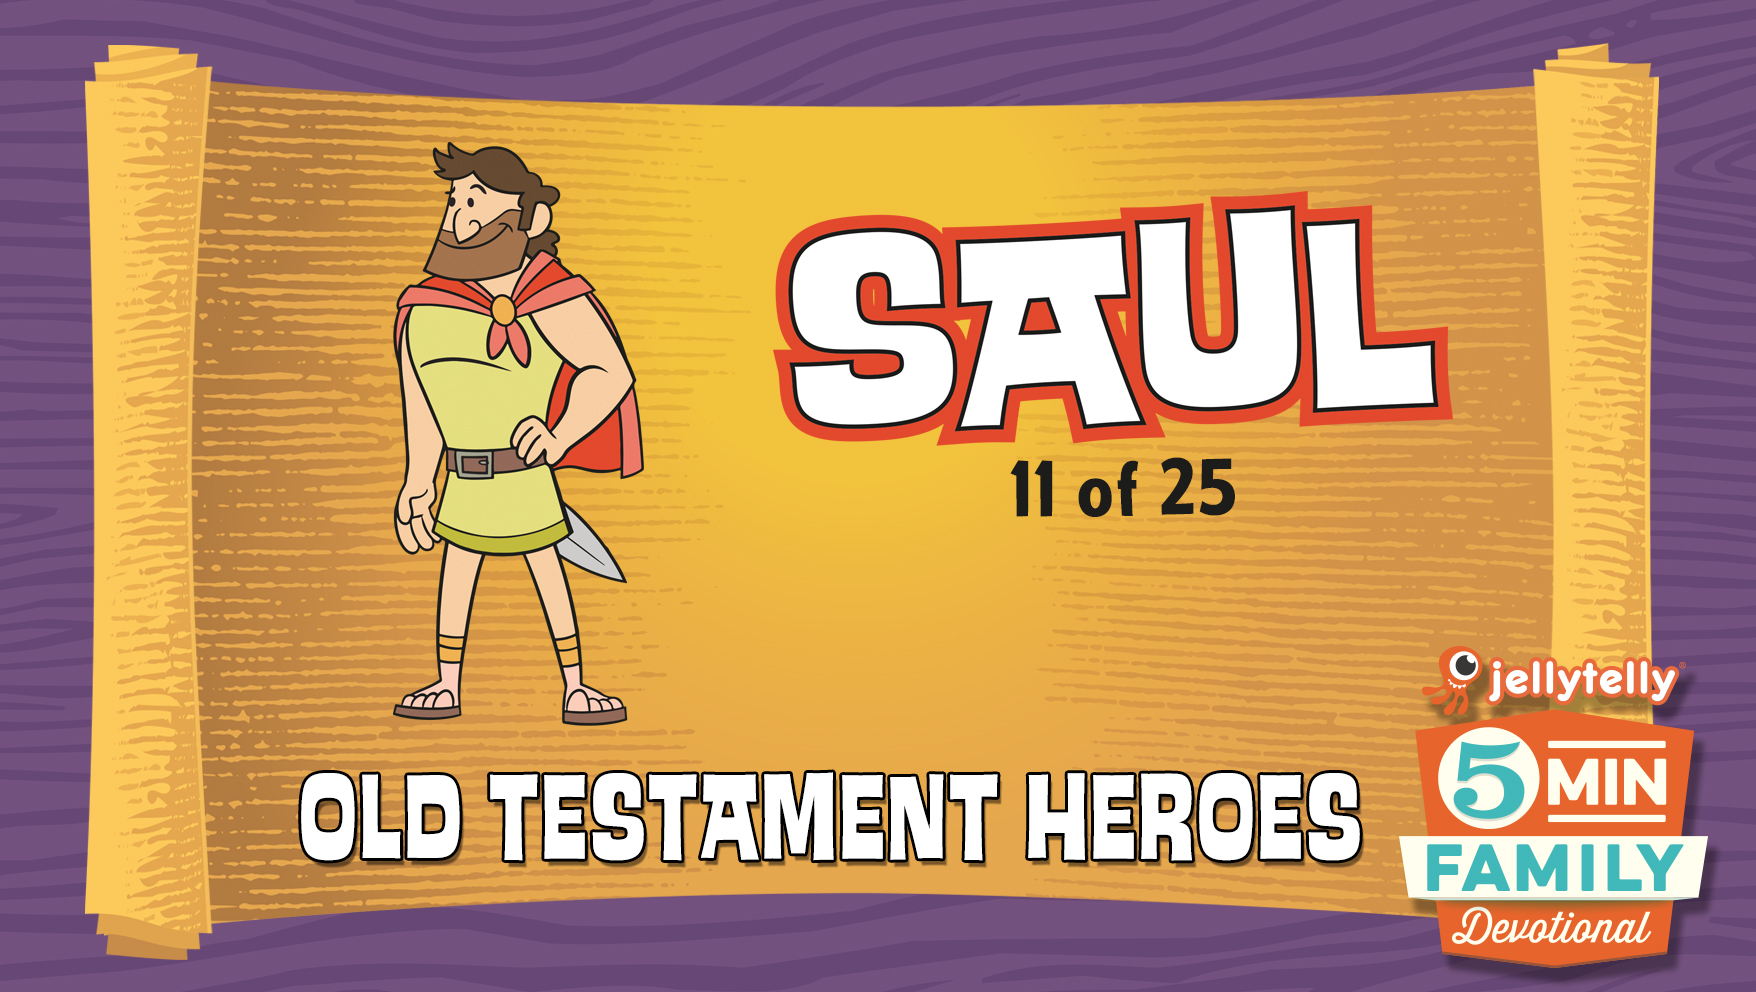 Saul: Old Testament Heroes - 5 Minute Family Devotional